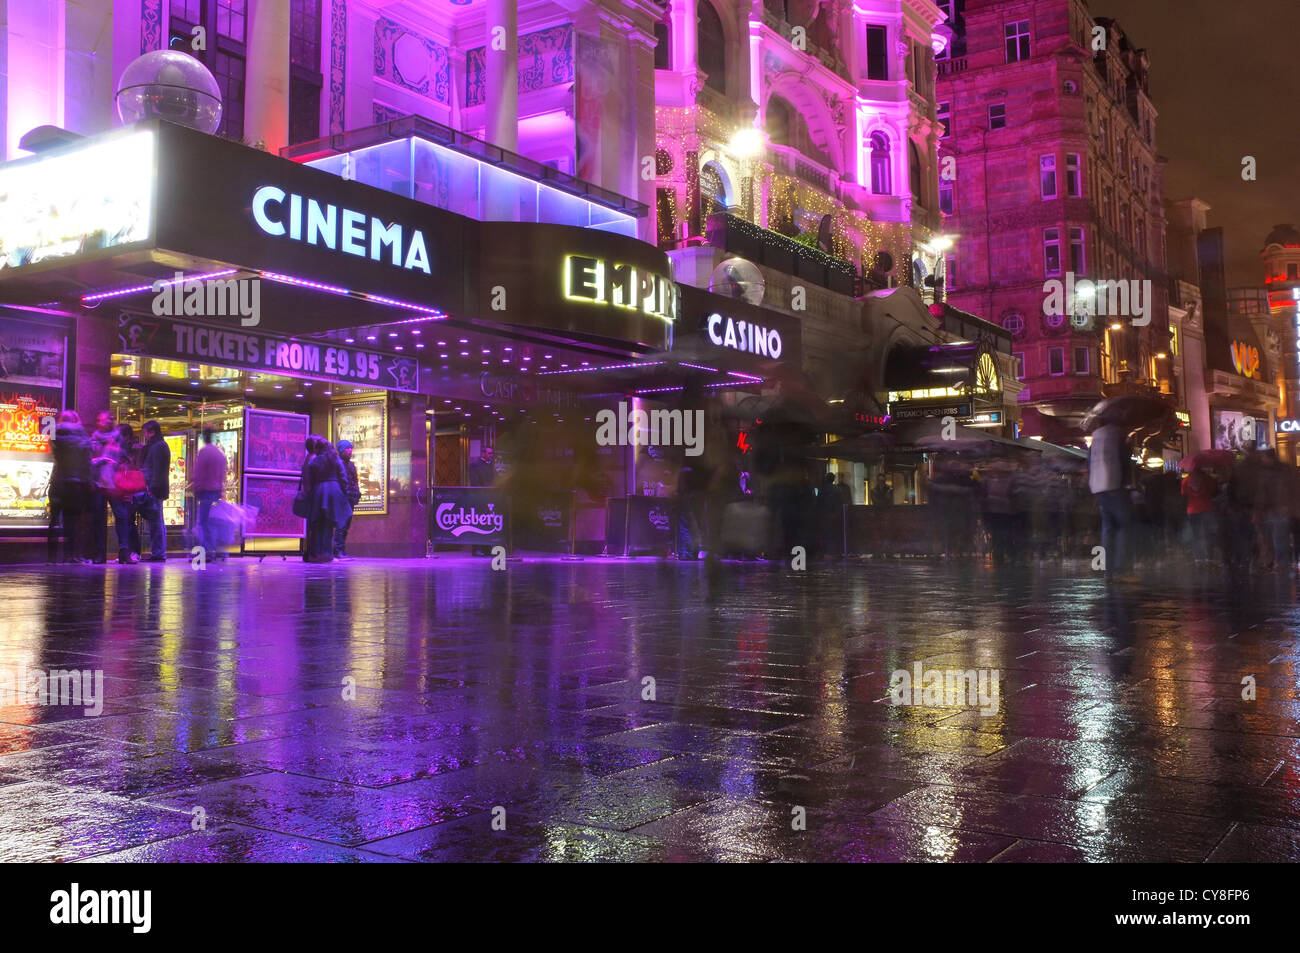 Empire Cinema Casino with people gathered outside in Leicester square, London - Stock Image